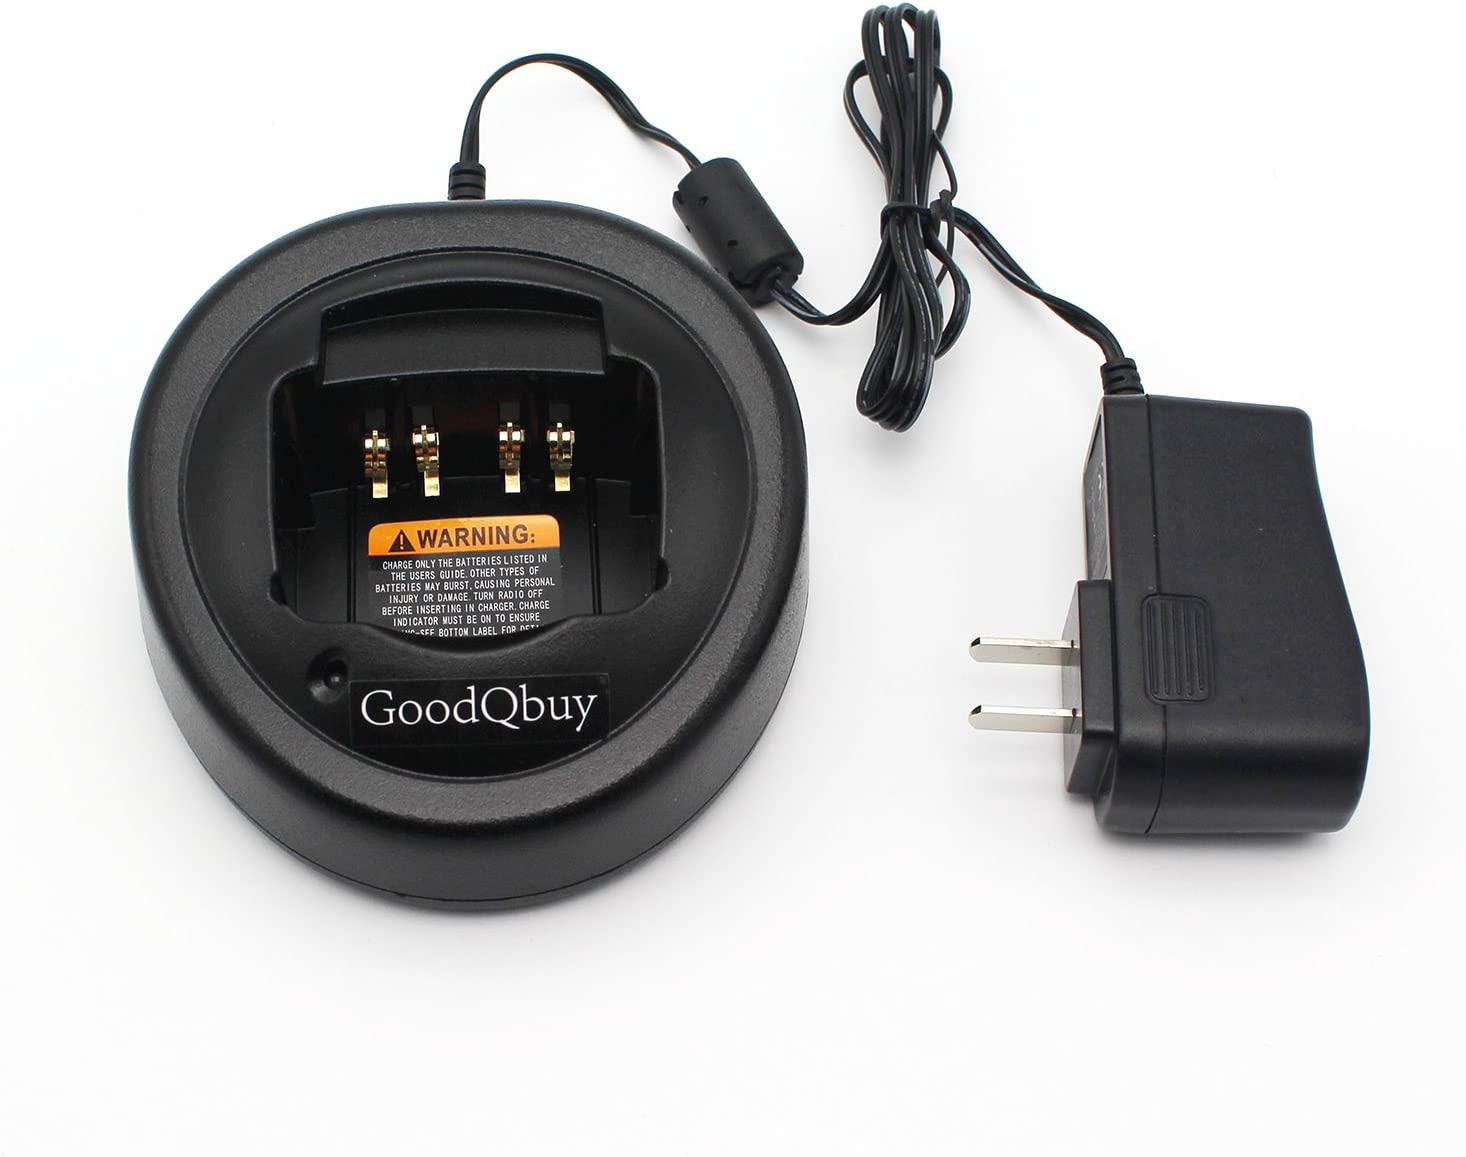 GoodQbuy Ni-MH Ni-CD Li-ion Battery Charging Dock Desktop Charger is Compatible with Motorola Radios EX500 GL2000 GP328 GP388 HT750 HT1250 MTX950 PRO5350 PTX760